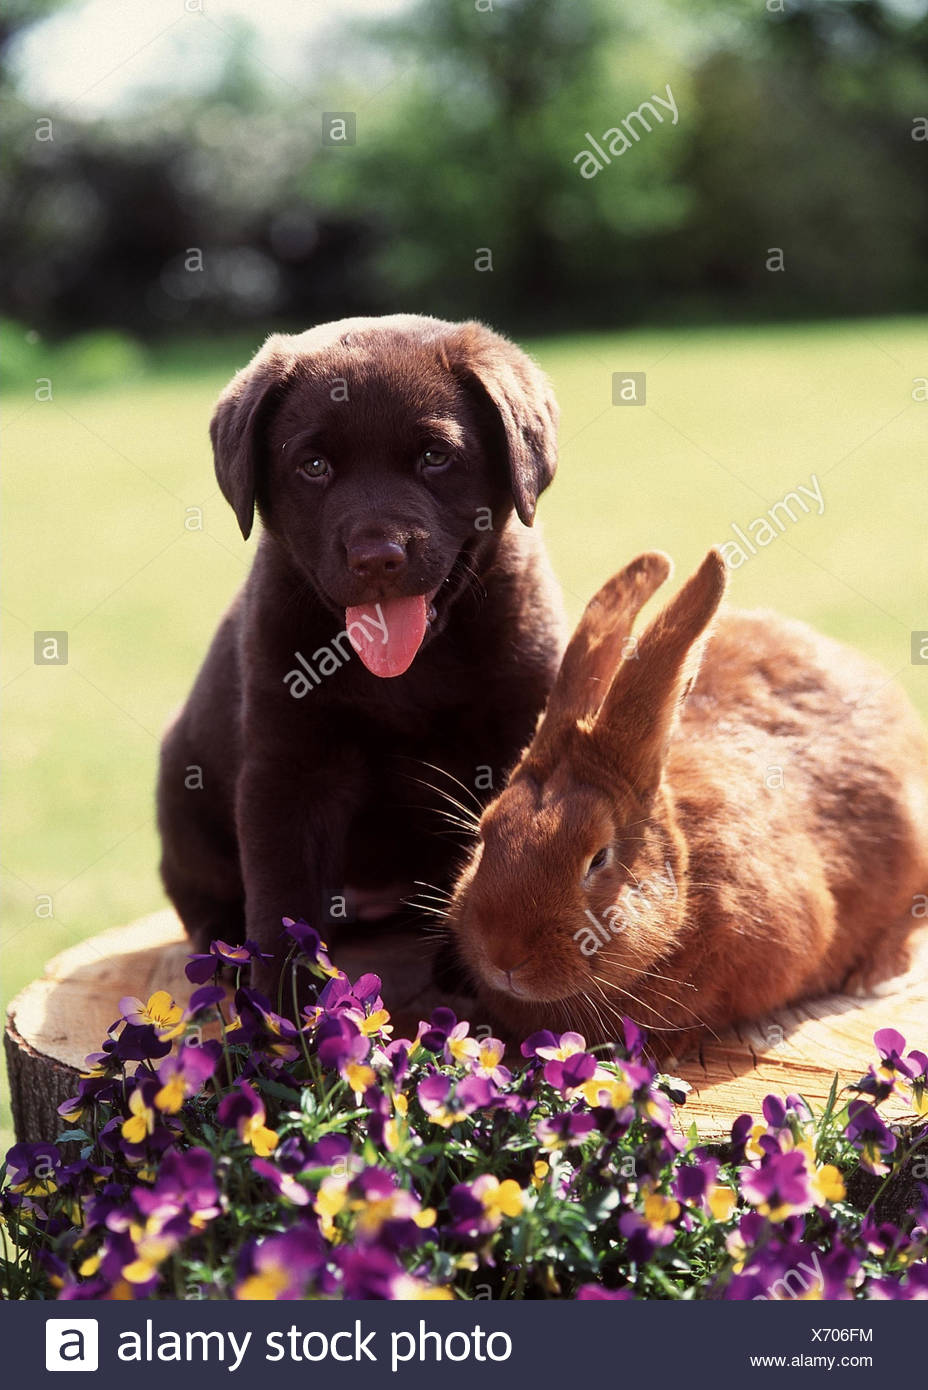 Garden, tree stump, rabbit, Labrador, young, sit, hatchel park, meadow, flowers, animals, pets, hare, Kanickel, young animal, puppy, dog, pedigree dog, young, animal friendship - Stock Image